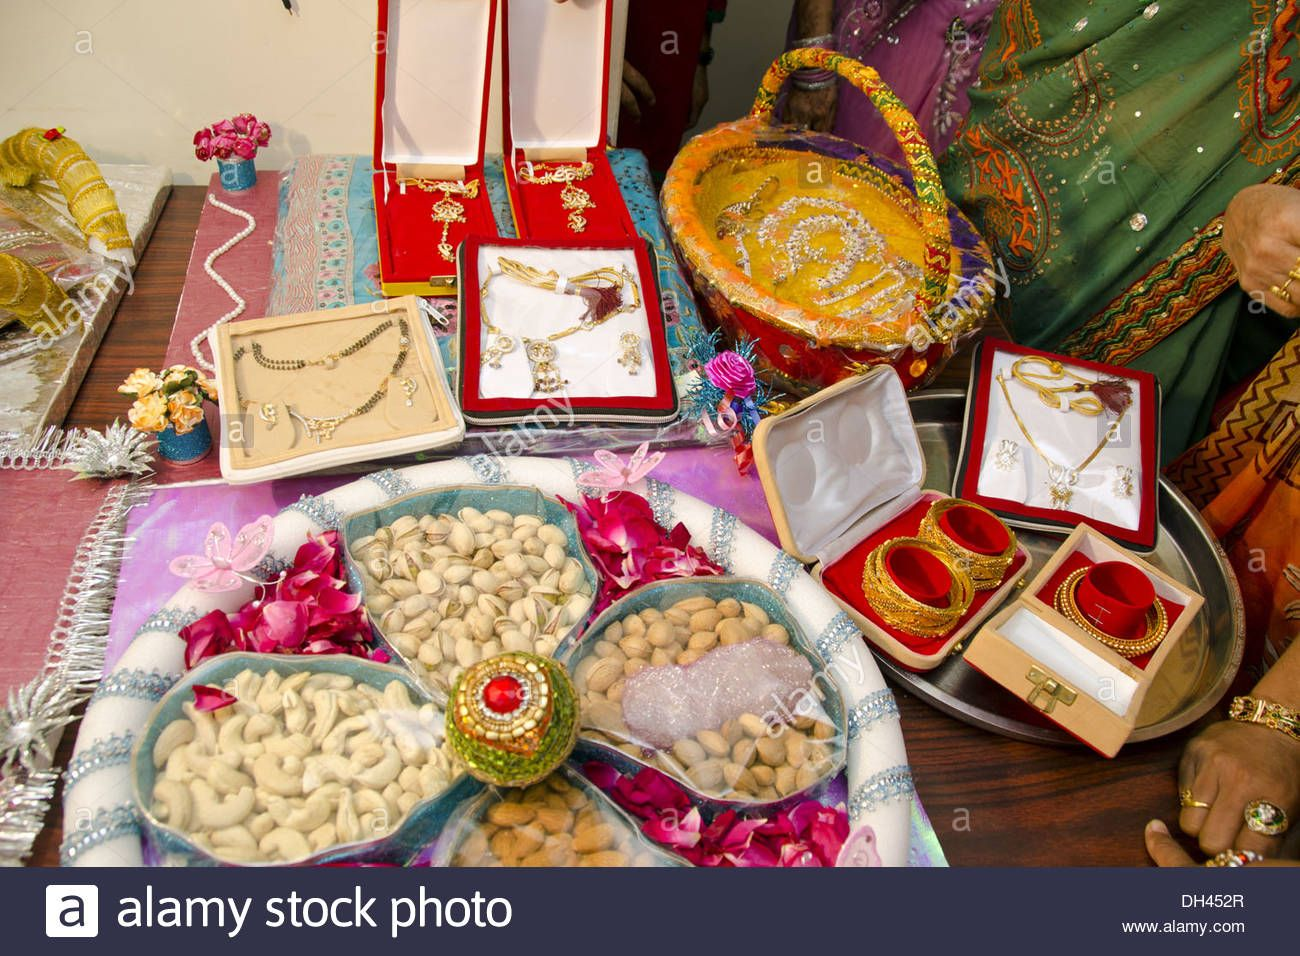 Wedding Gift Ideas India: Dowry Gifts Jewellery Dry Fruits Decorative Packing For